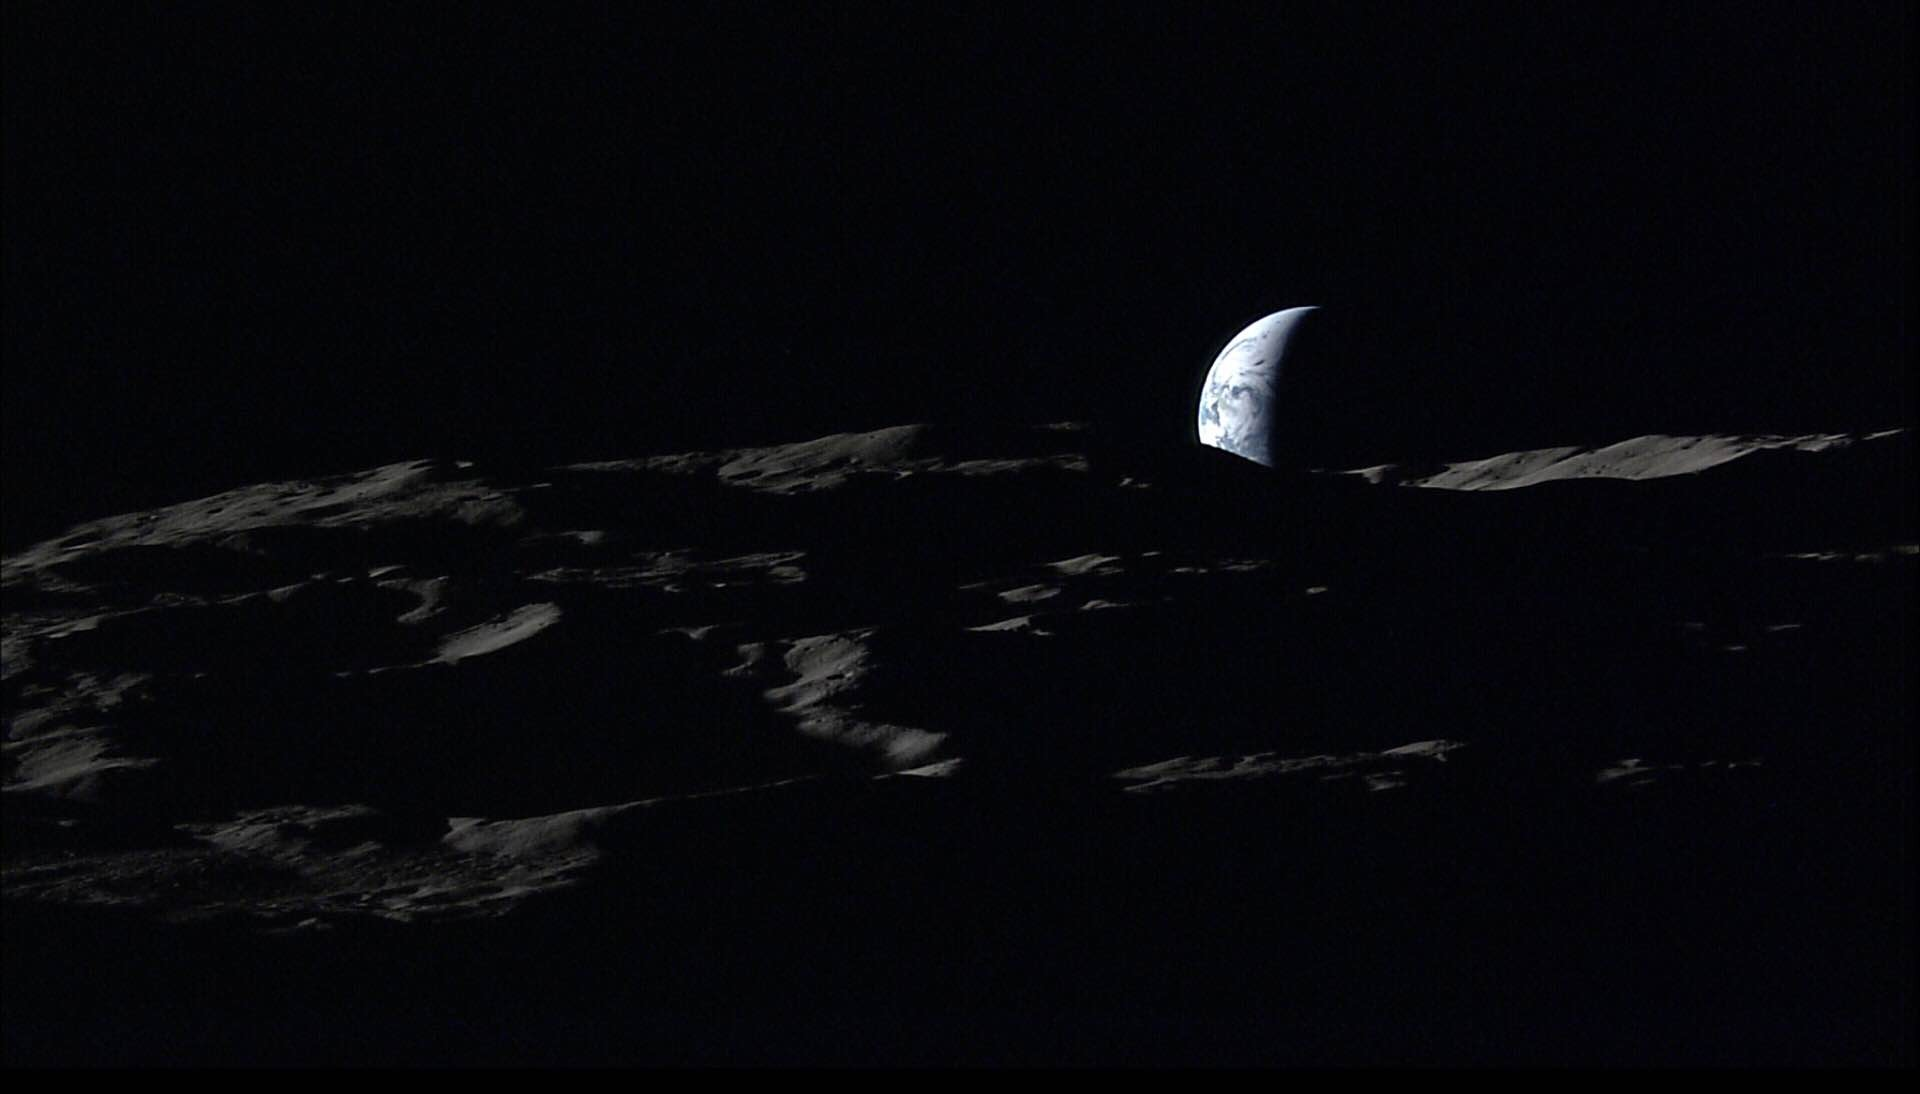 Photo: JAXA / NHK, captured by Kaguya spacecraft on January 2008